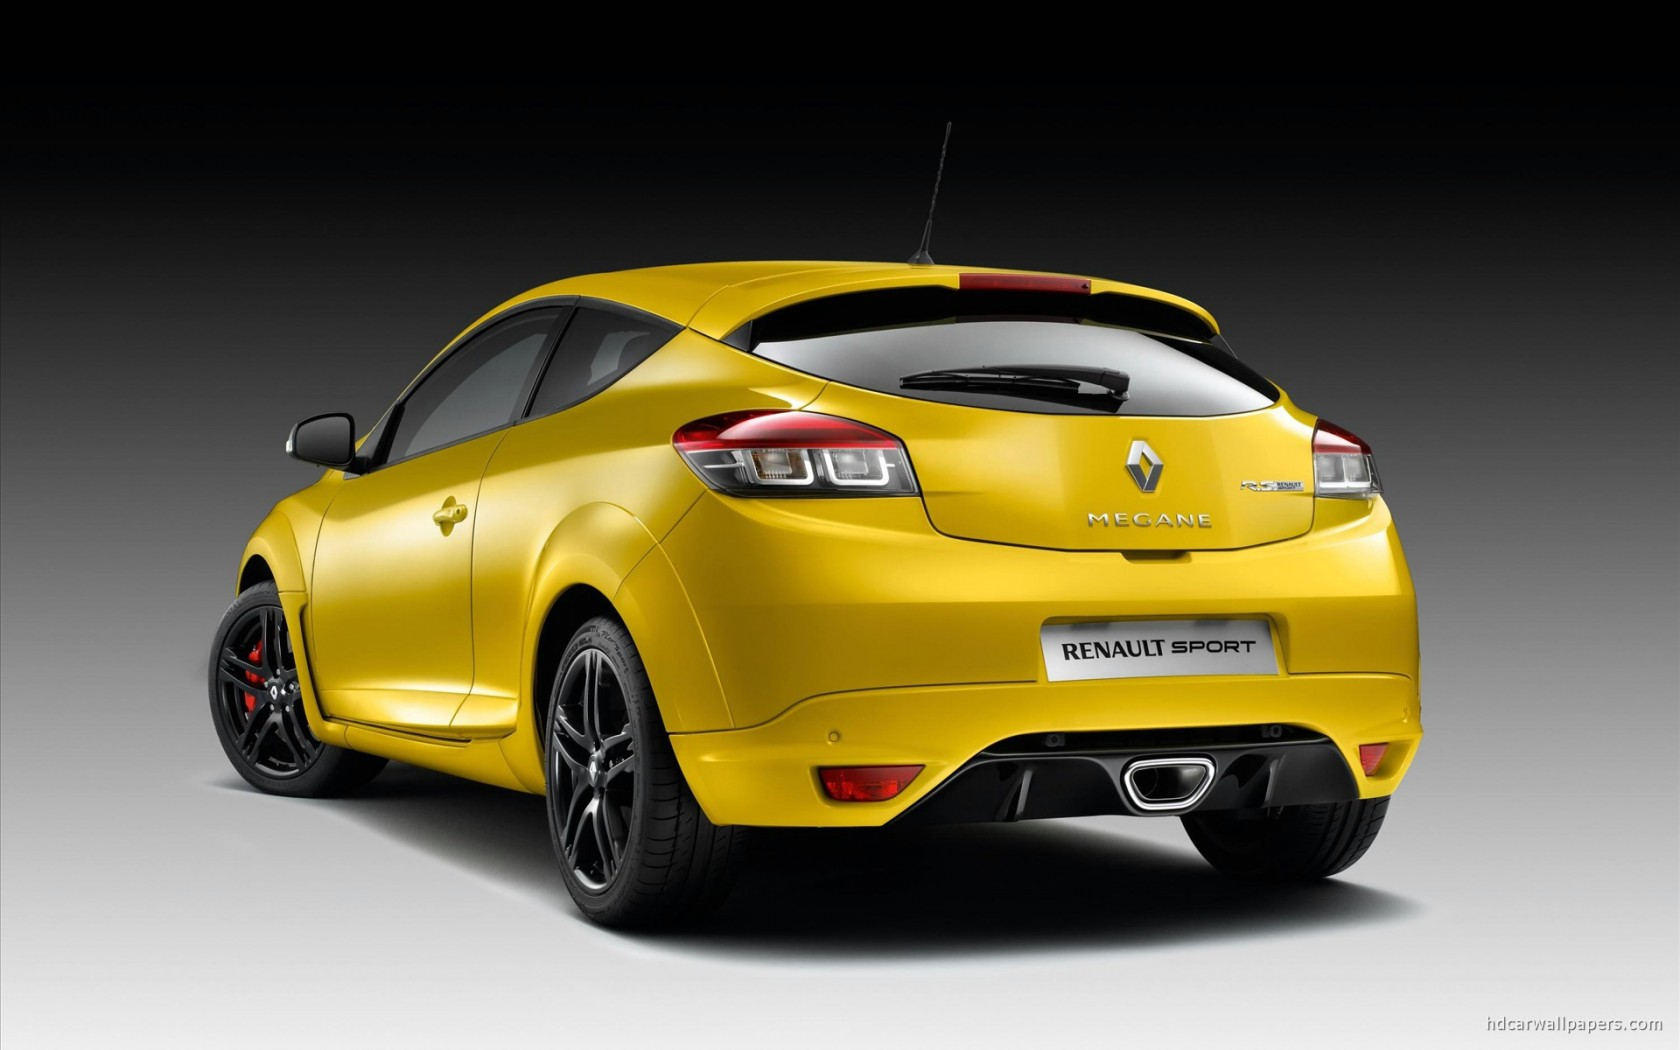 2010 new megane renault sport 2 wallpaper hd car wallpapers id 1460. Black Bedroom Furniture Sets. Home Design Ideas